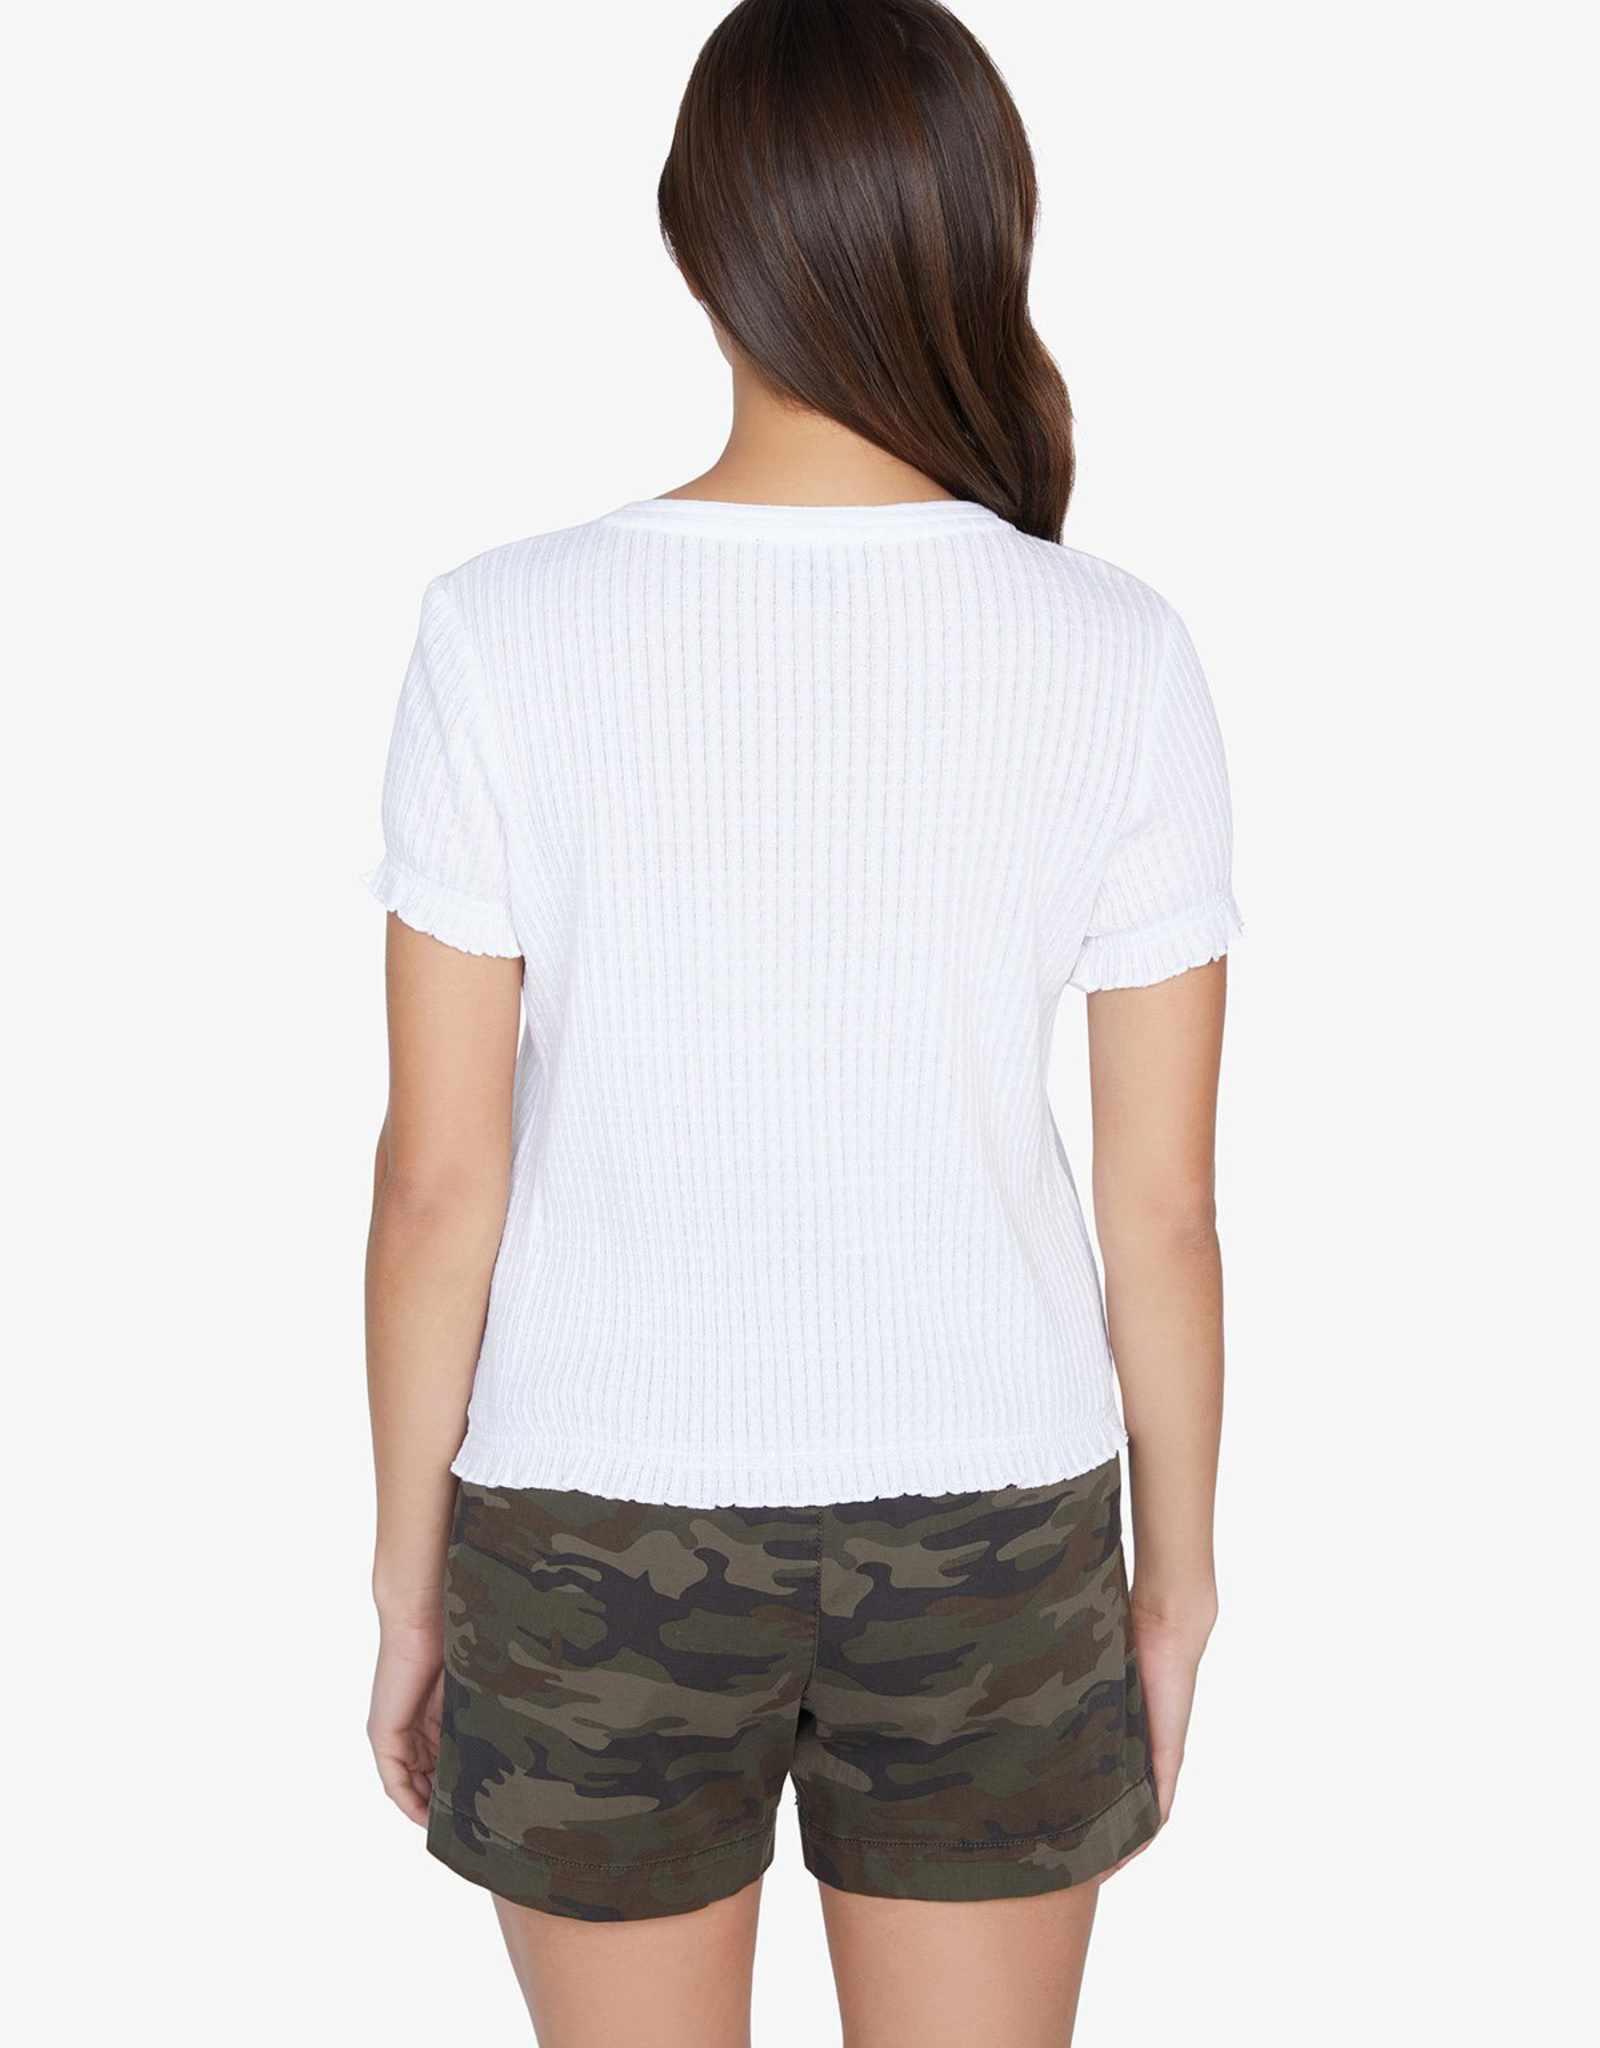 Cut to The Pointelle Tee